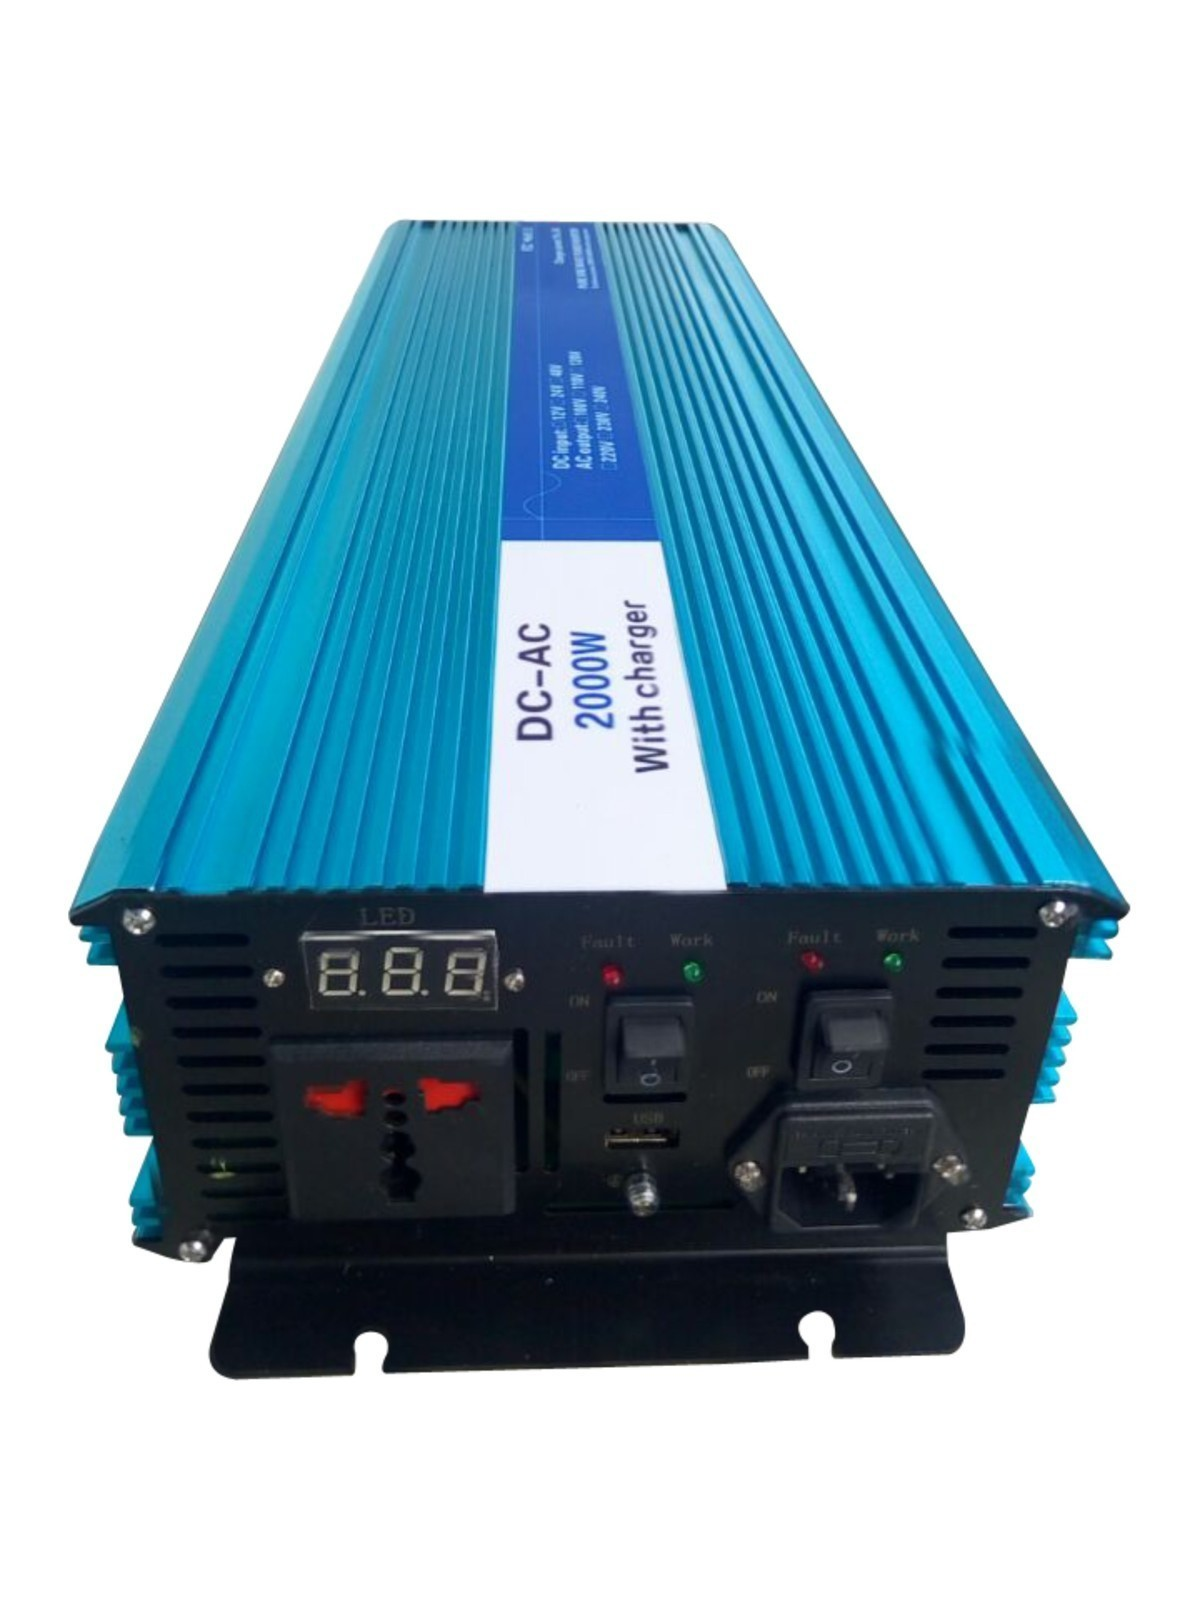 2500W Pure Sine Wave Inverter,DC 12V/24V/48V To AC 110V/220V,off Grid Solar Power Inverter With Battery Charger And UPS smalto часы smalto st4g003m0131 коллекция panarea